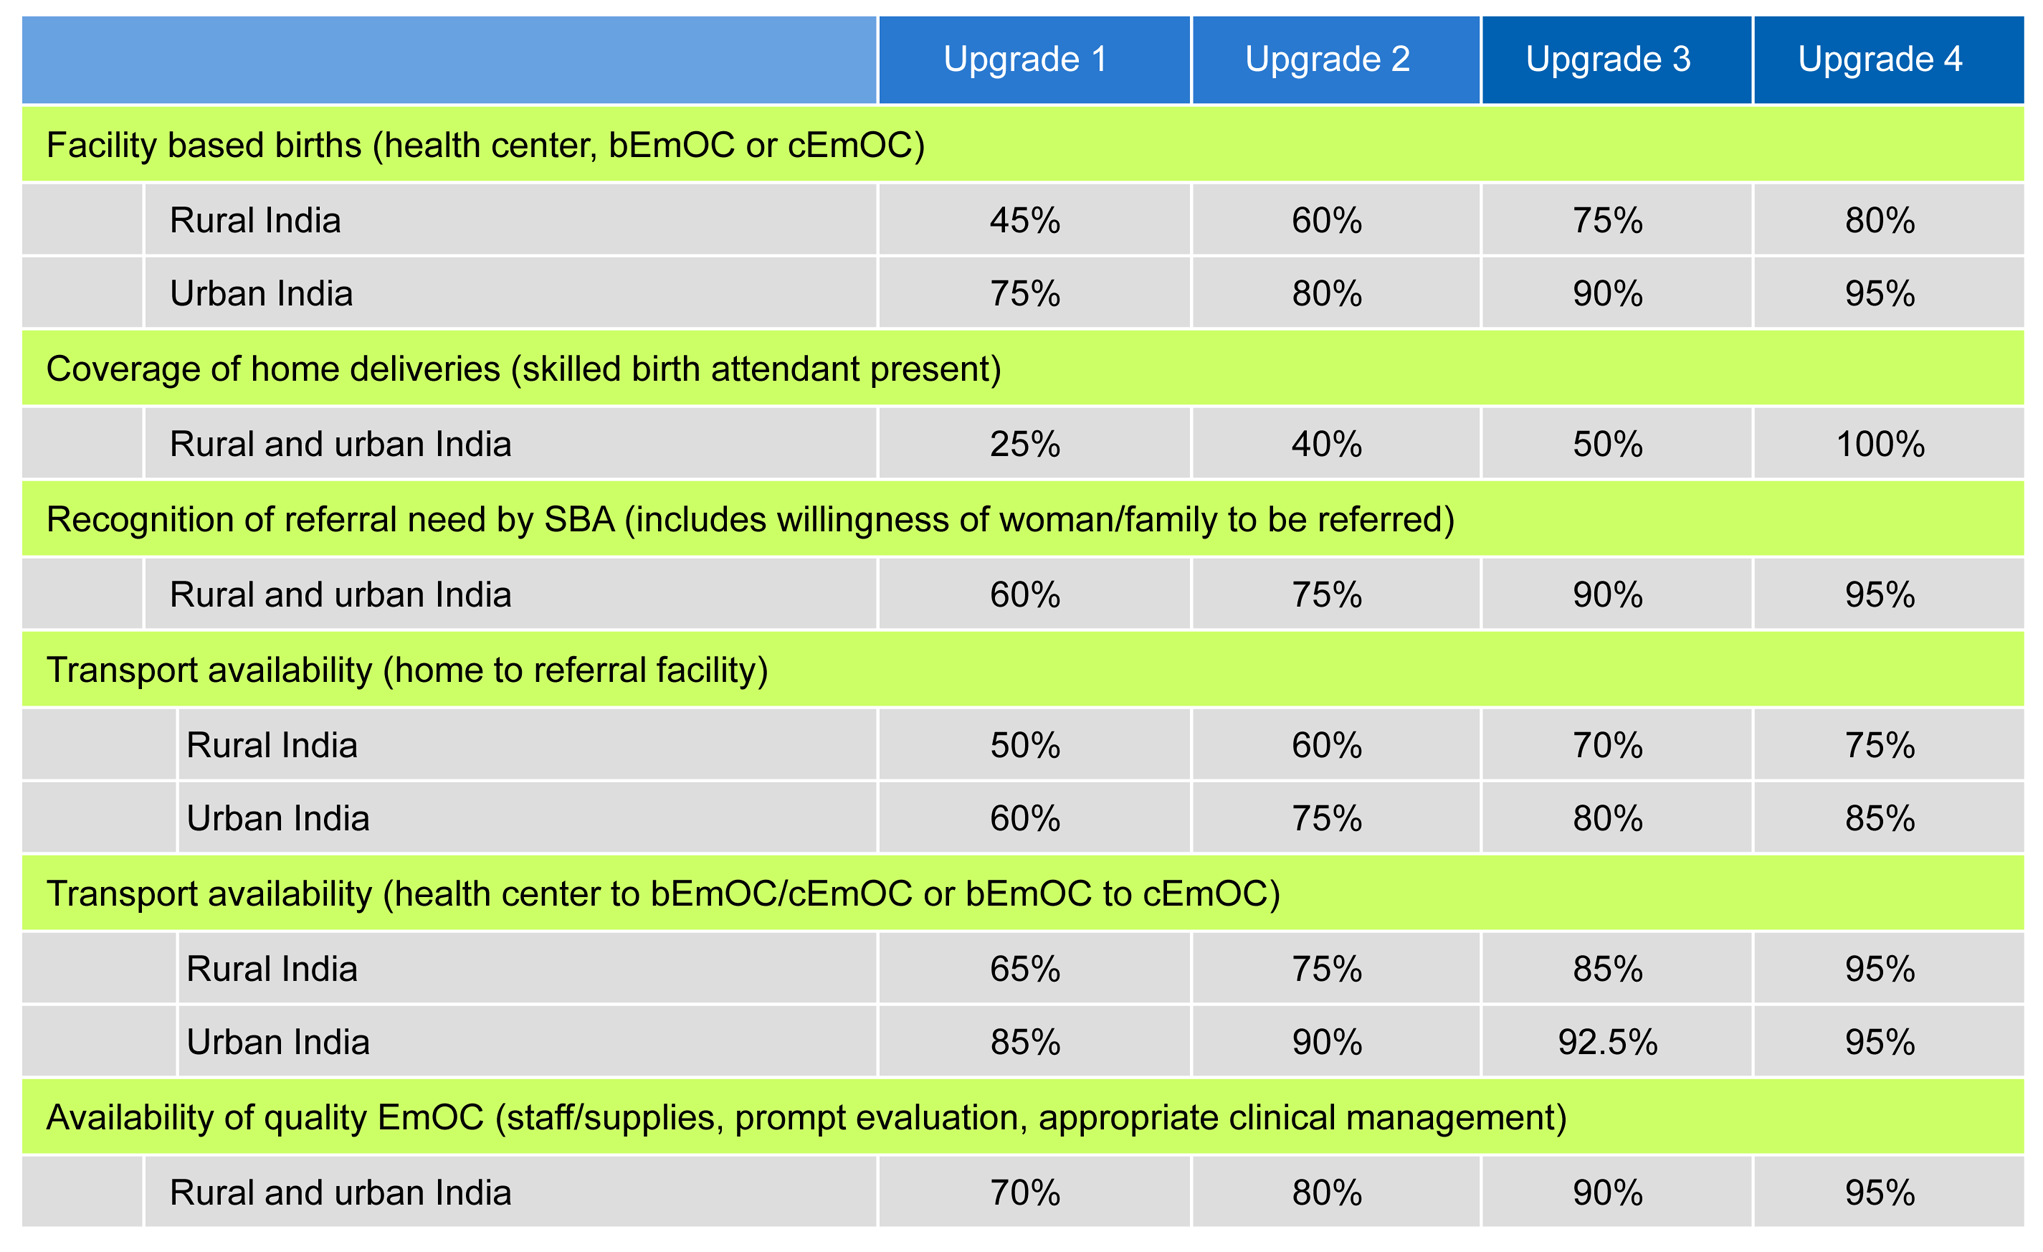 Stepwise improvements in scaling up maternal services.